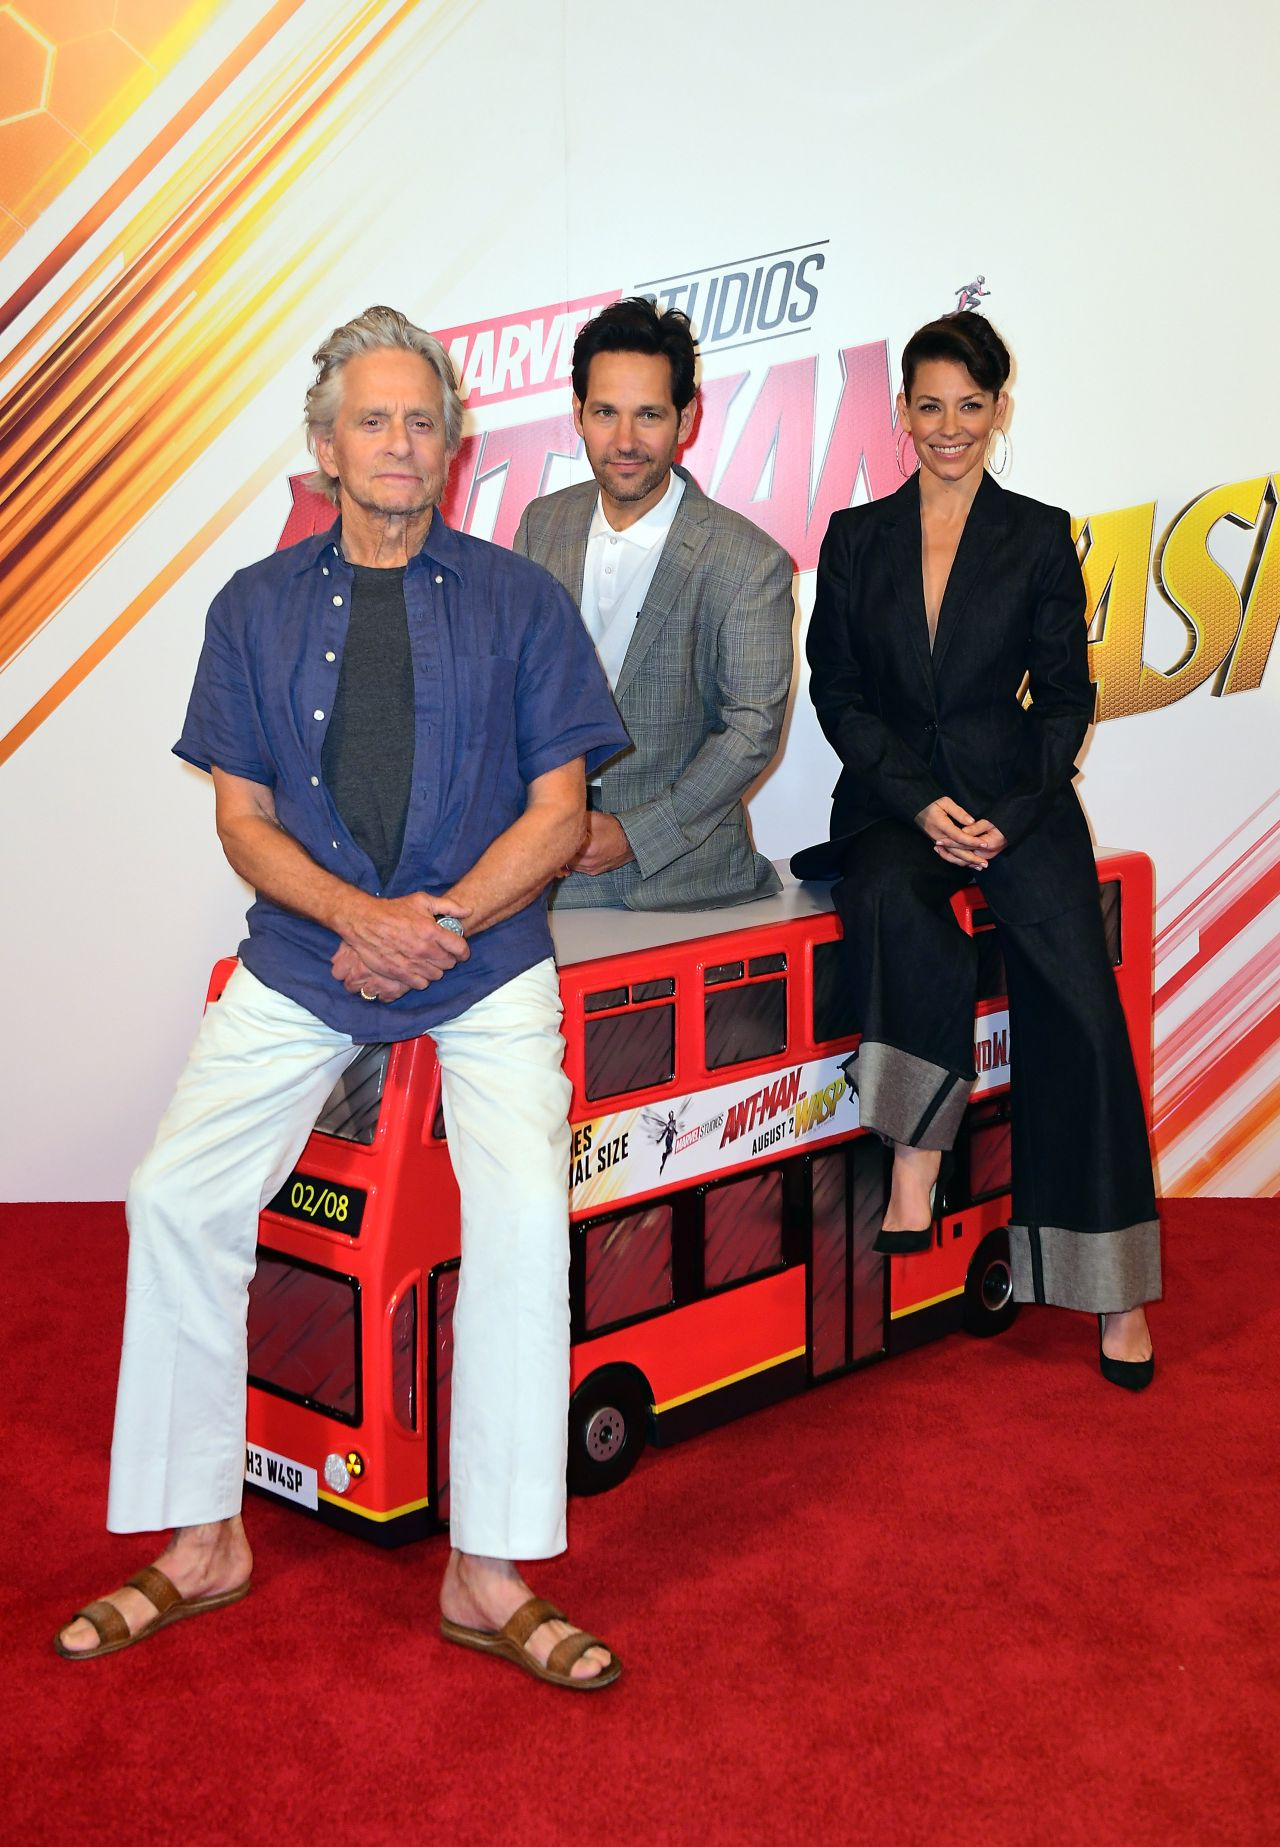 https://celebmafia.com/wp-content/uploads/2018/07/evangeline-lilly-ant-man-and-the-wasp-photocall-in-london-5.jpg